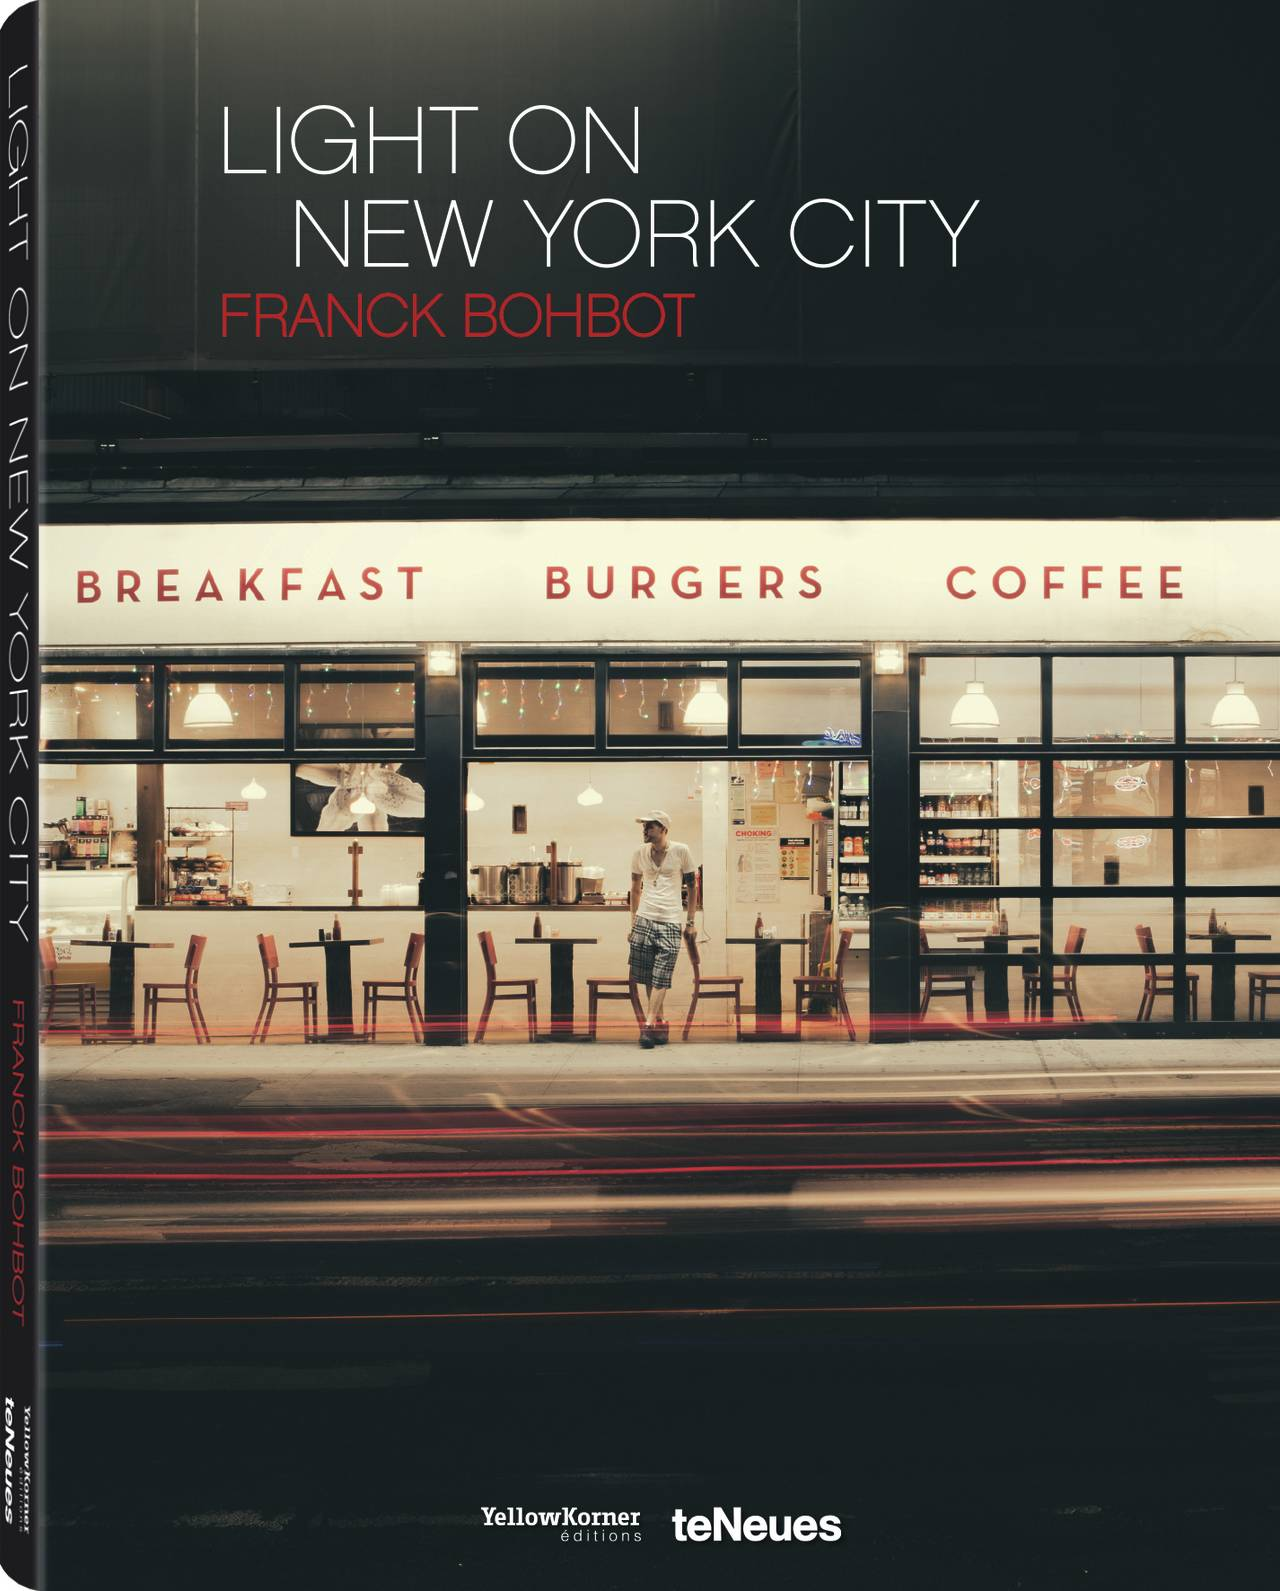 © Light On New City by Franck Bohbot, published by teNeues and YellowKorner, www.teneues.com, www.yellowkorner.com. Sugar Café, Lower East Side, Manhattan, 2013, Photo © 2016 Franck Bohbot/INSTITUTE. All rights reserved. www.instituteartist.com